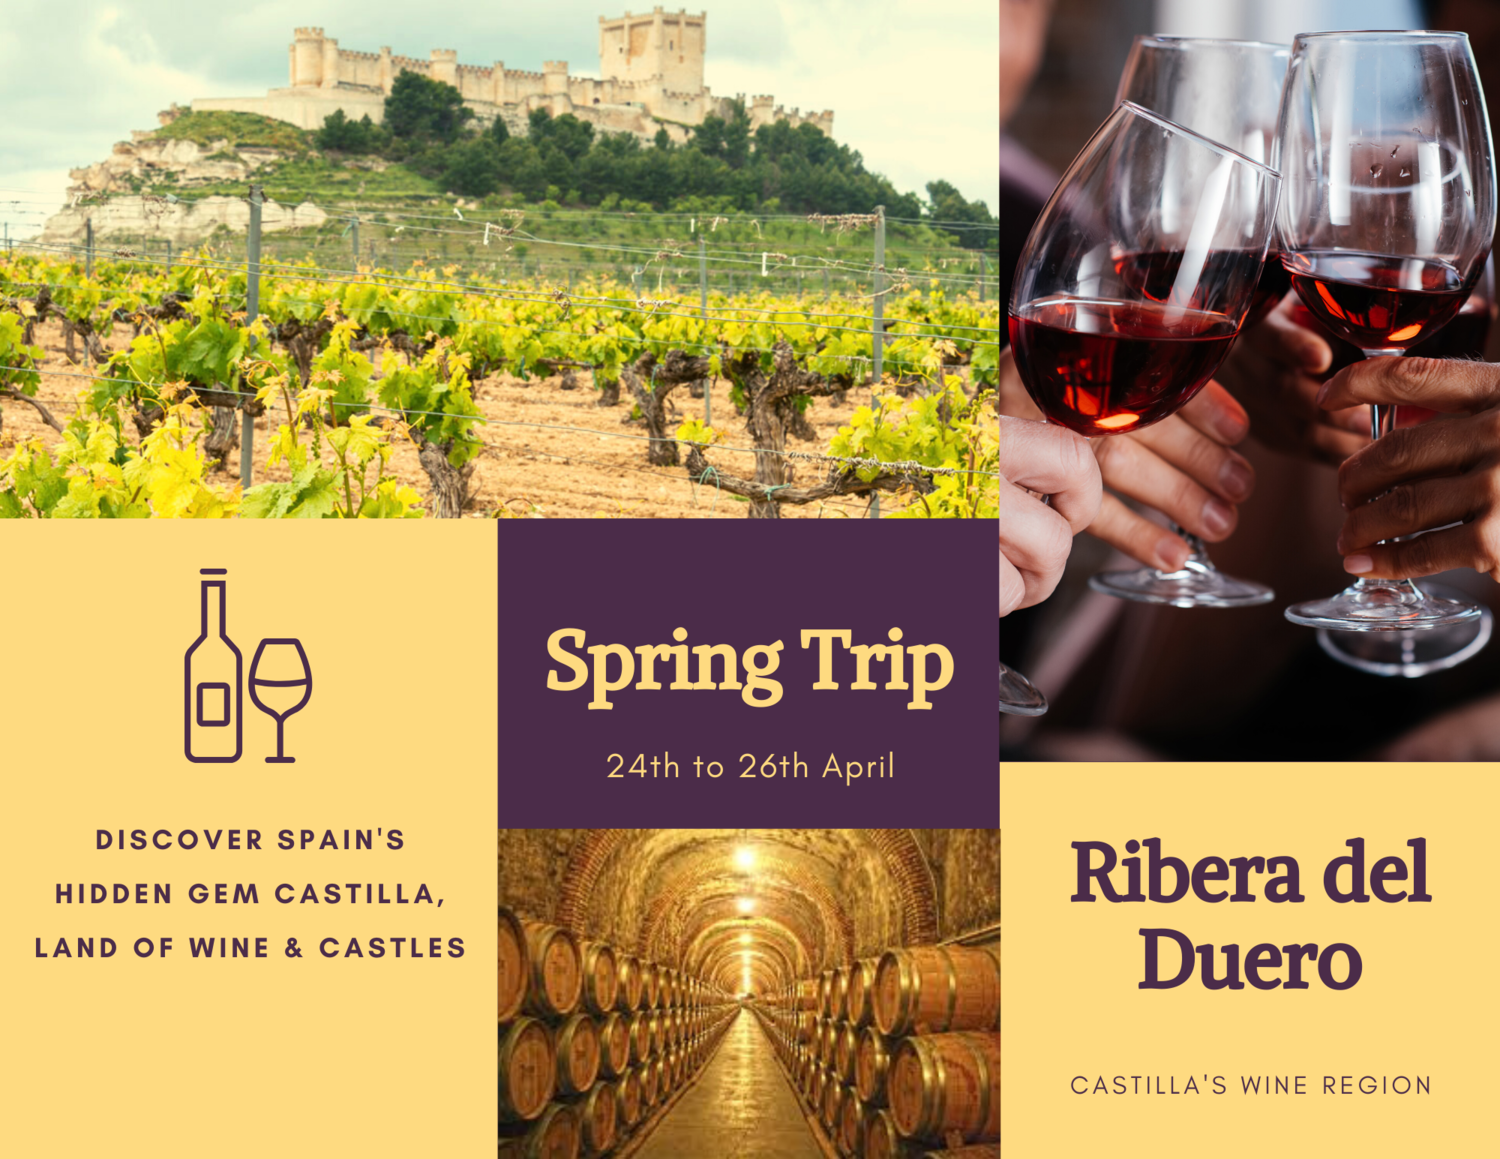 Trip Ribera del Duero - 24th to 26th April